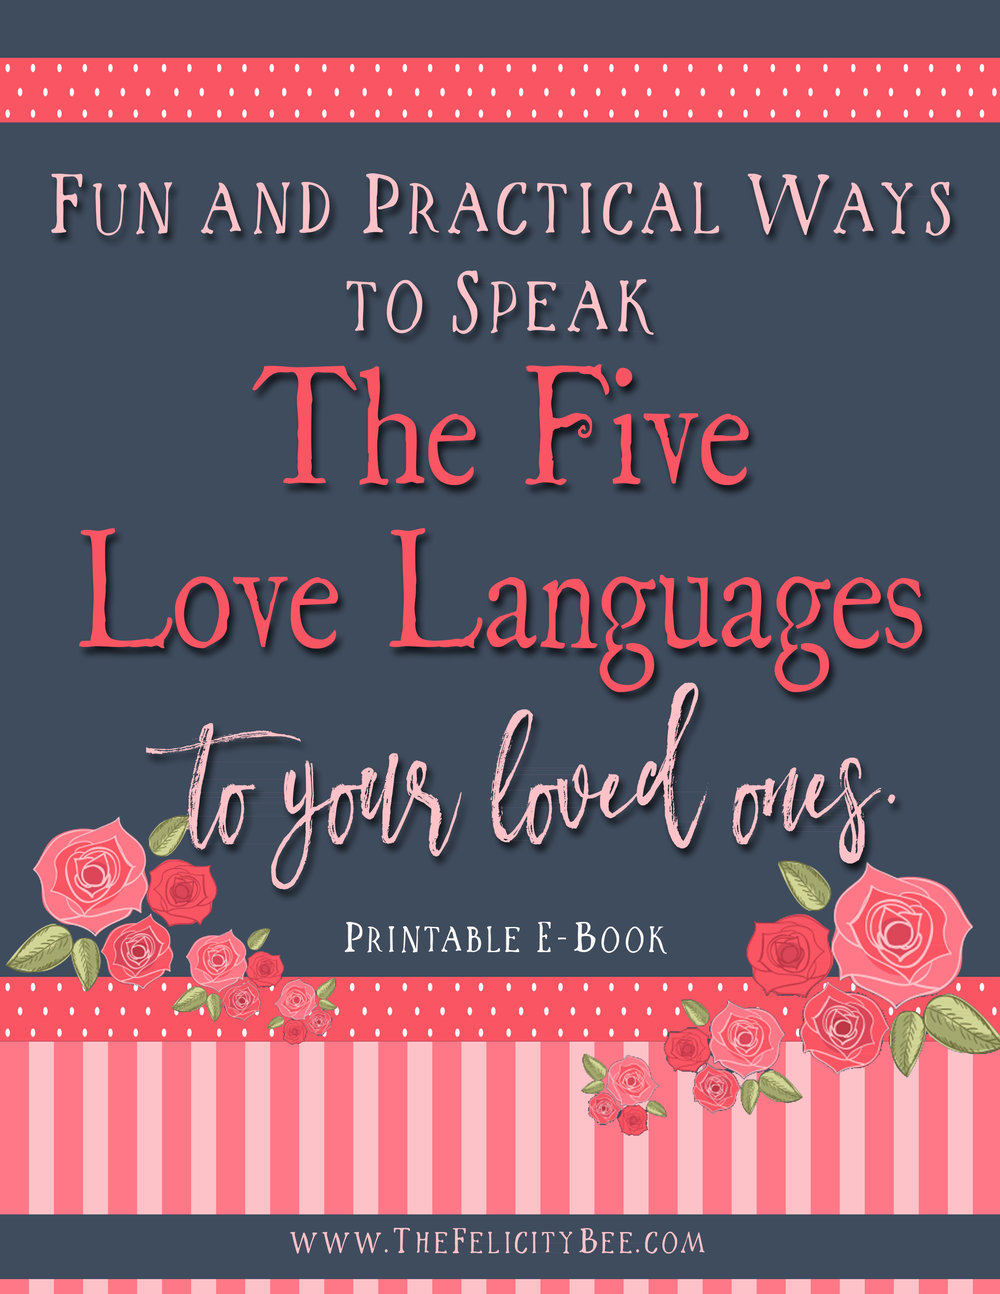 To download your Fun and Practical ways to Speak the Five Love Languages, click here.